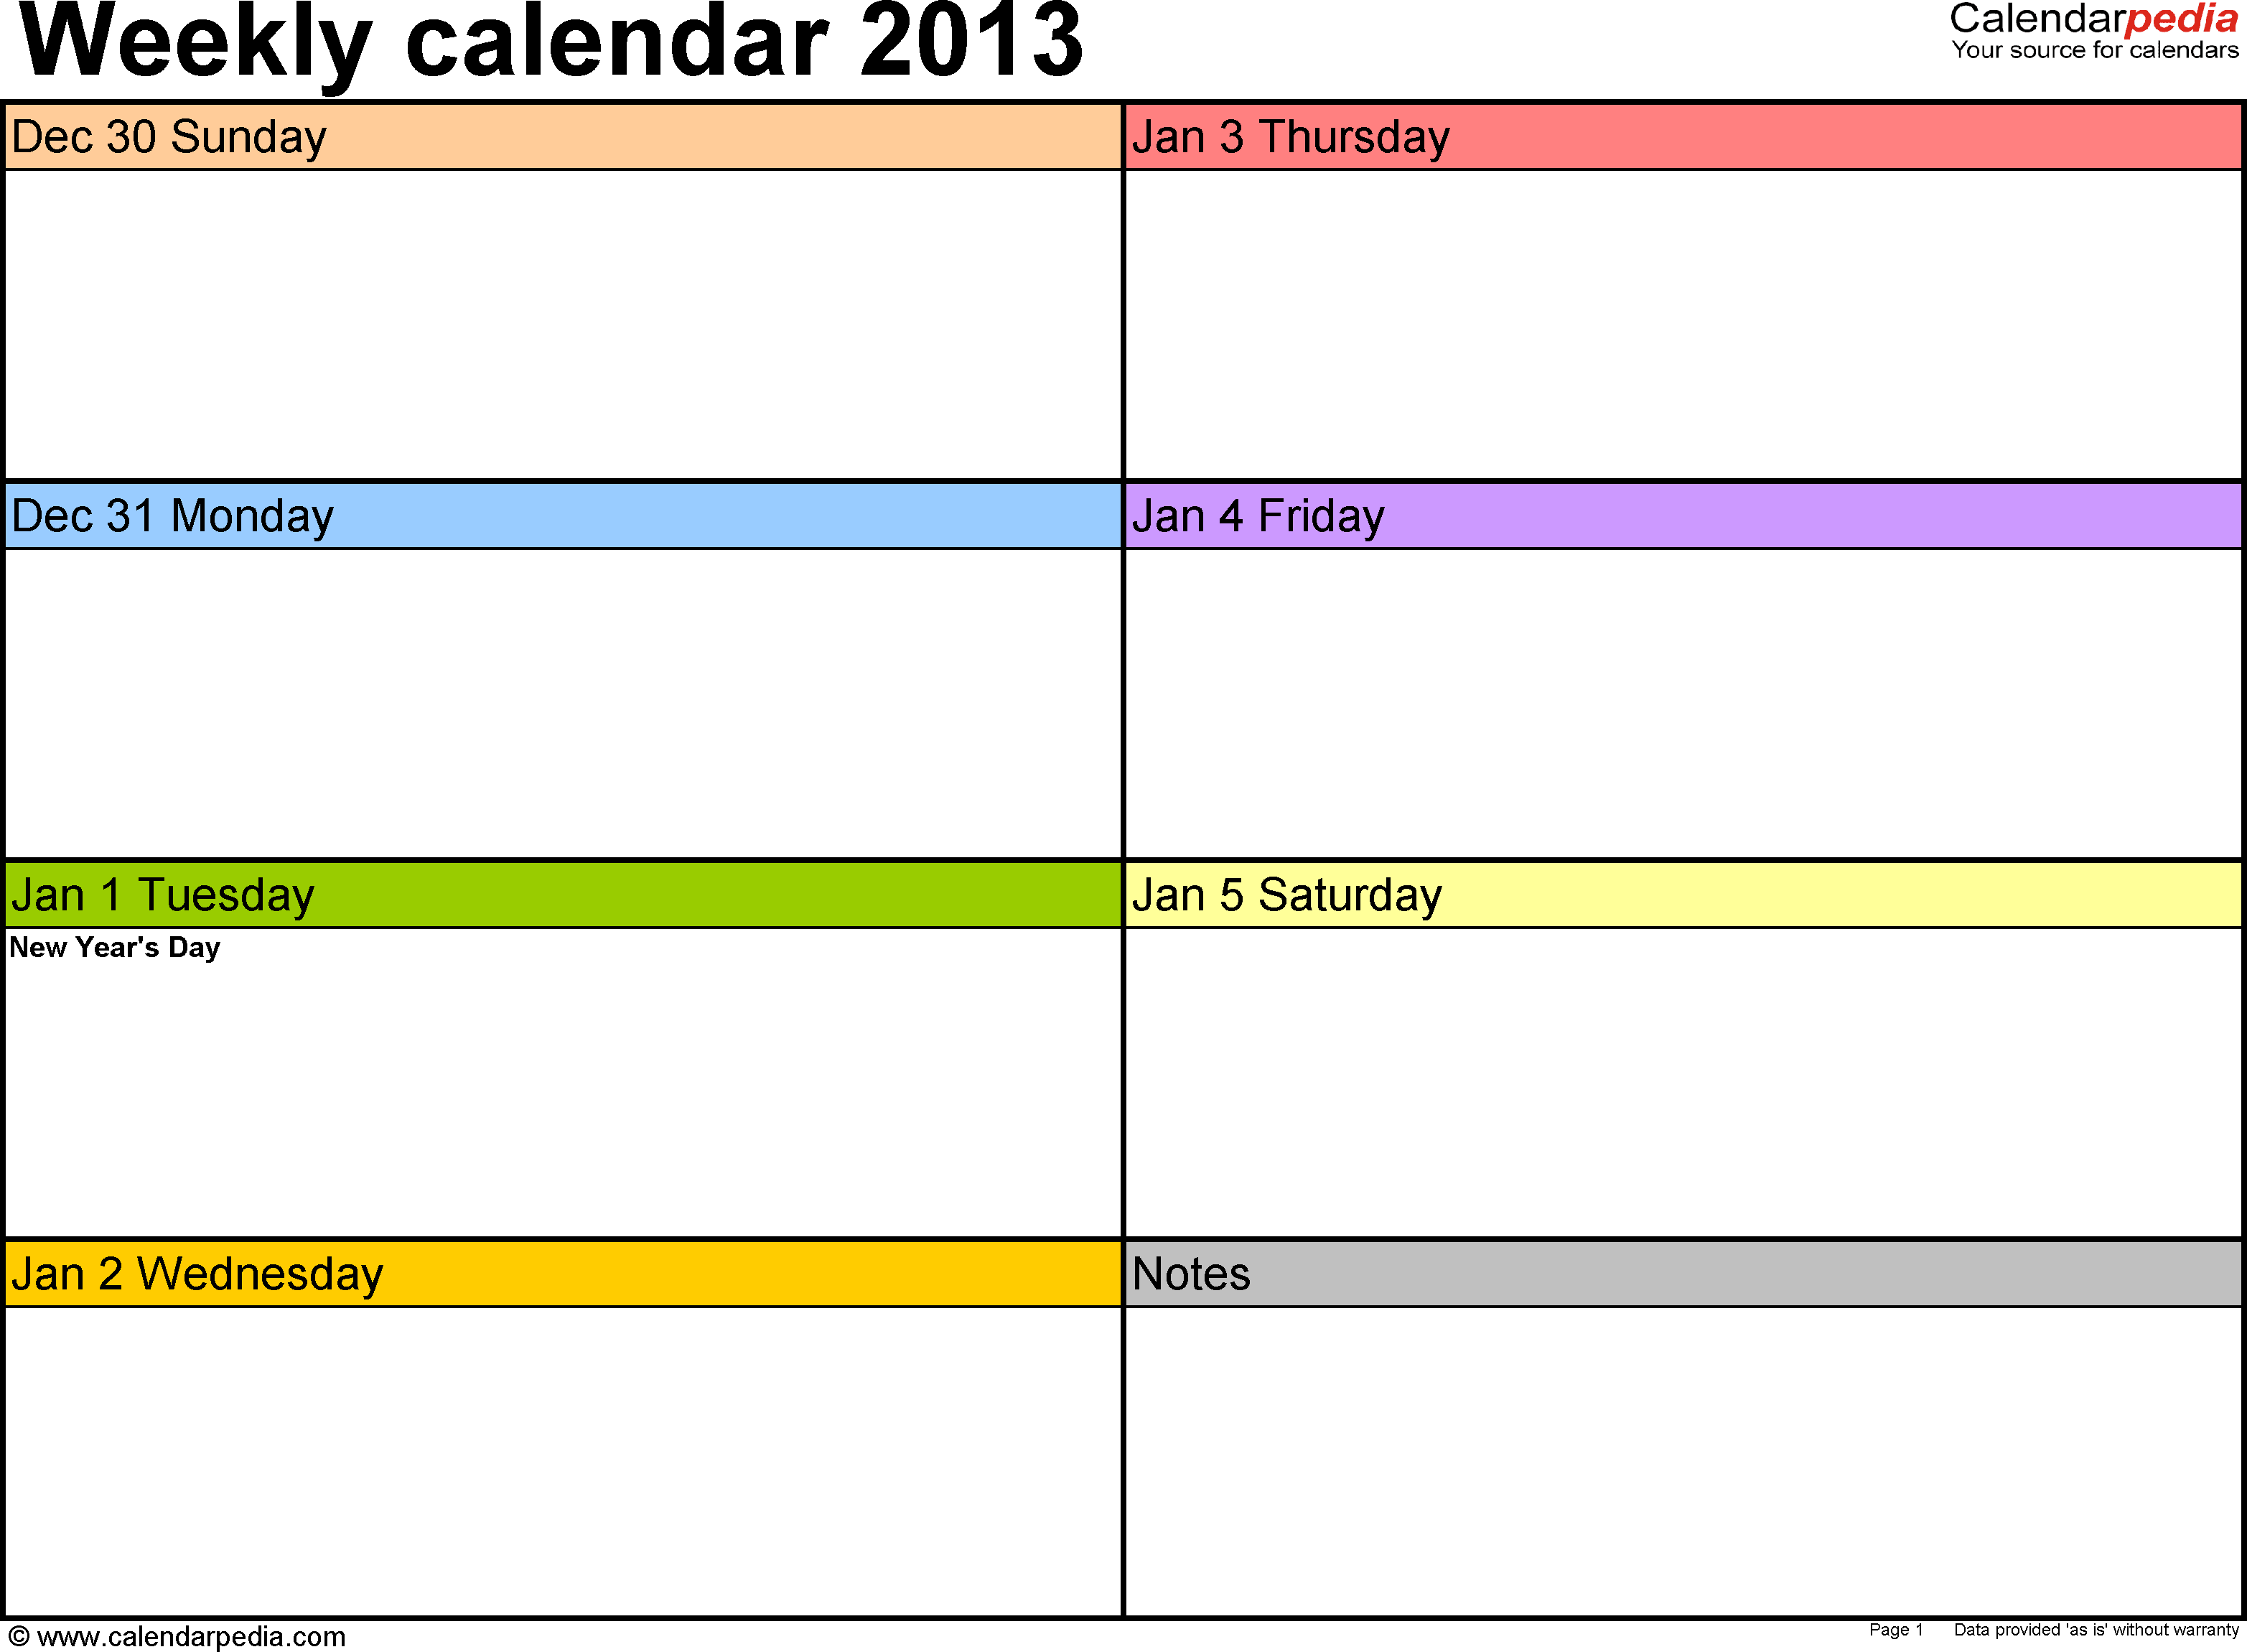 Weekly calendar 2013: template for PDF version 2, landscape, 53 pages, in color, week divided into 2 columns (7 days and one field for notes)